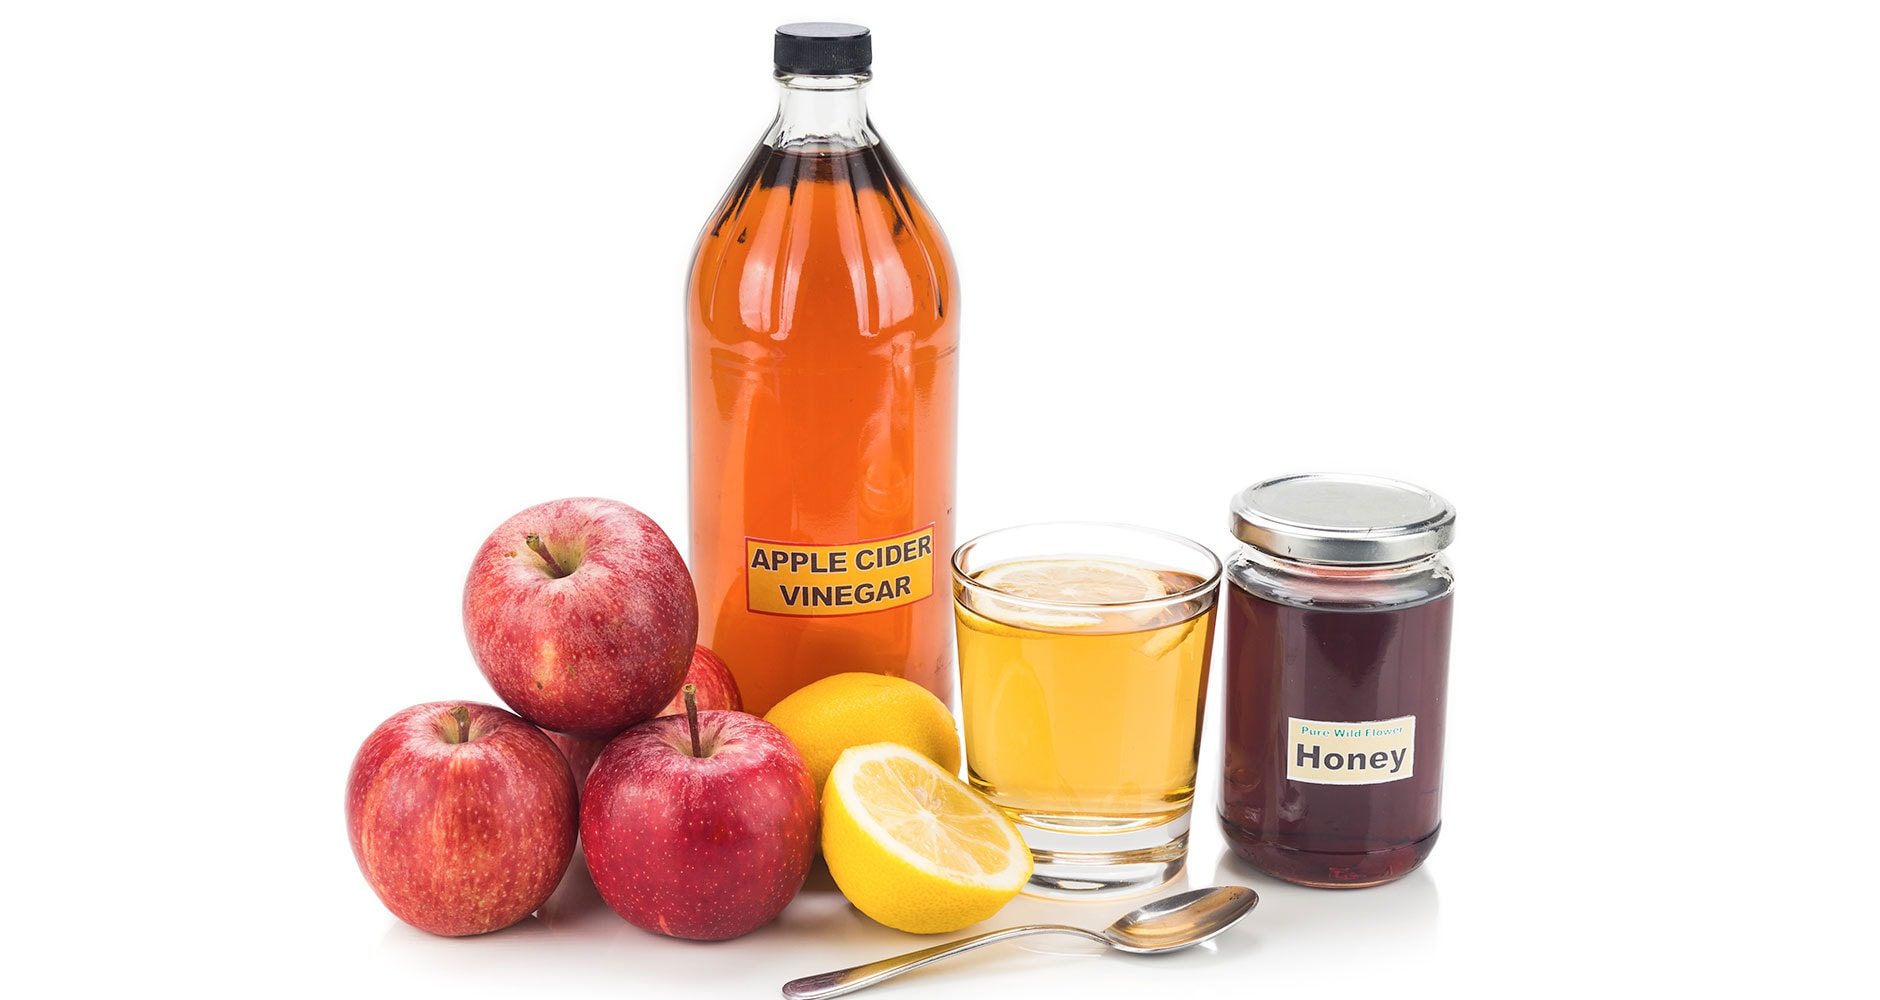 Detox With Apple Cider Vinegarimage preview